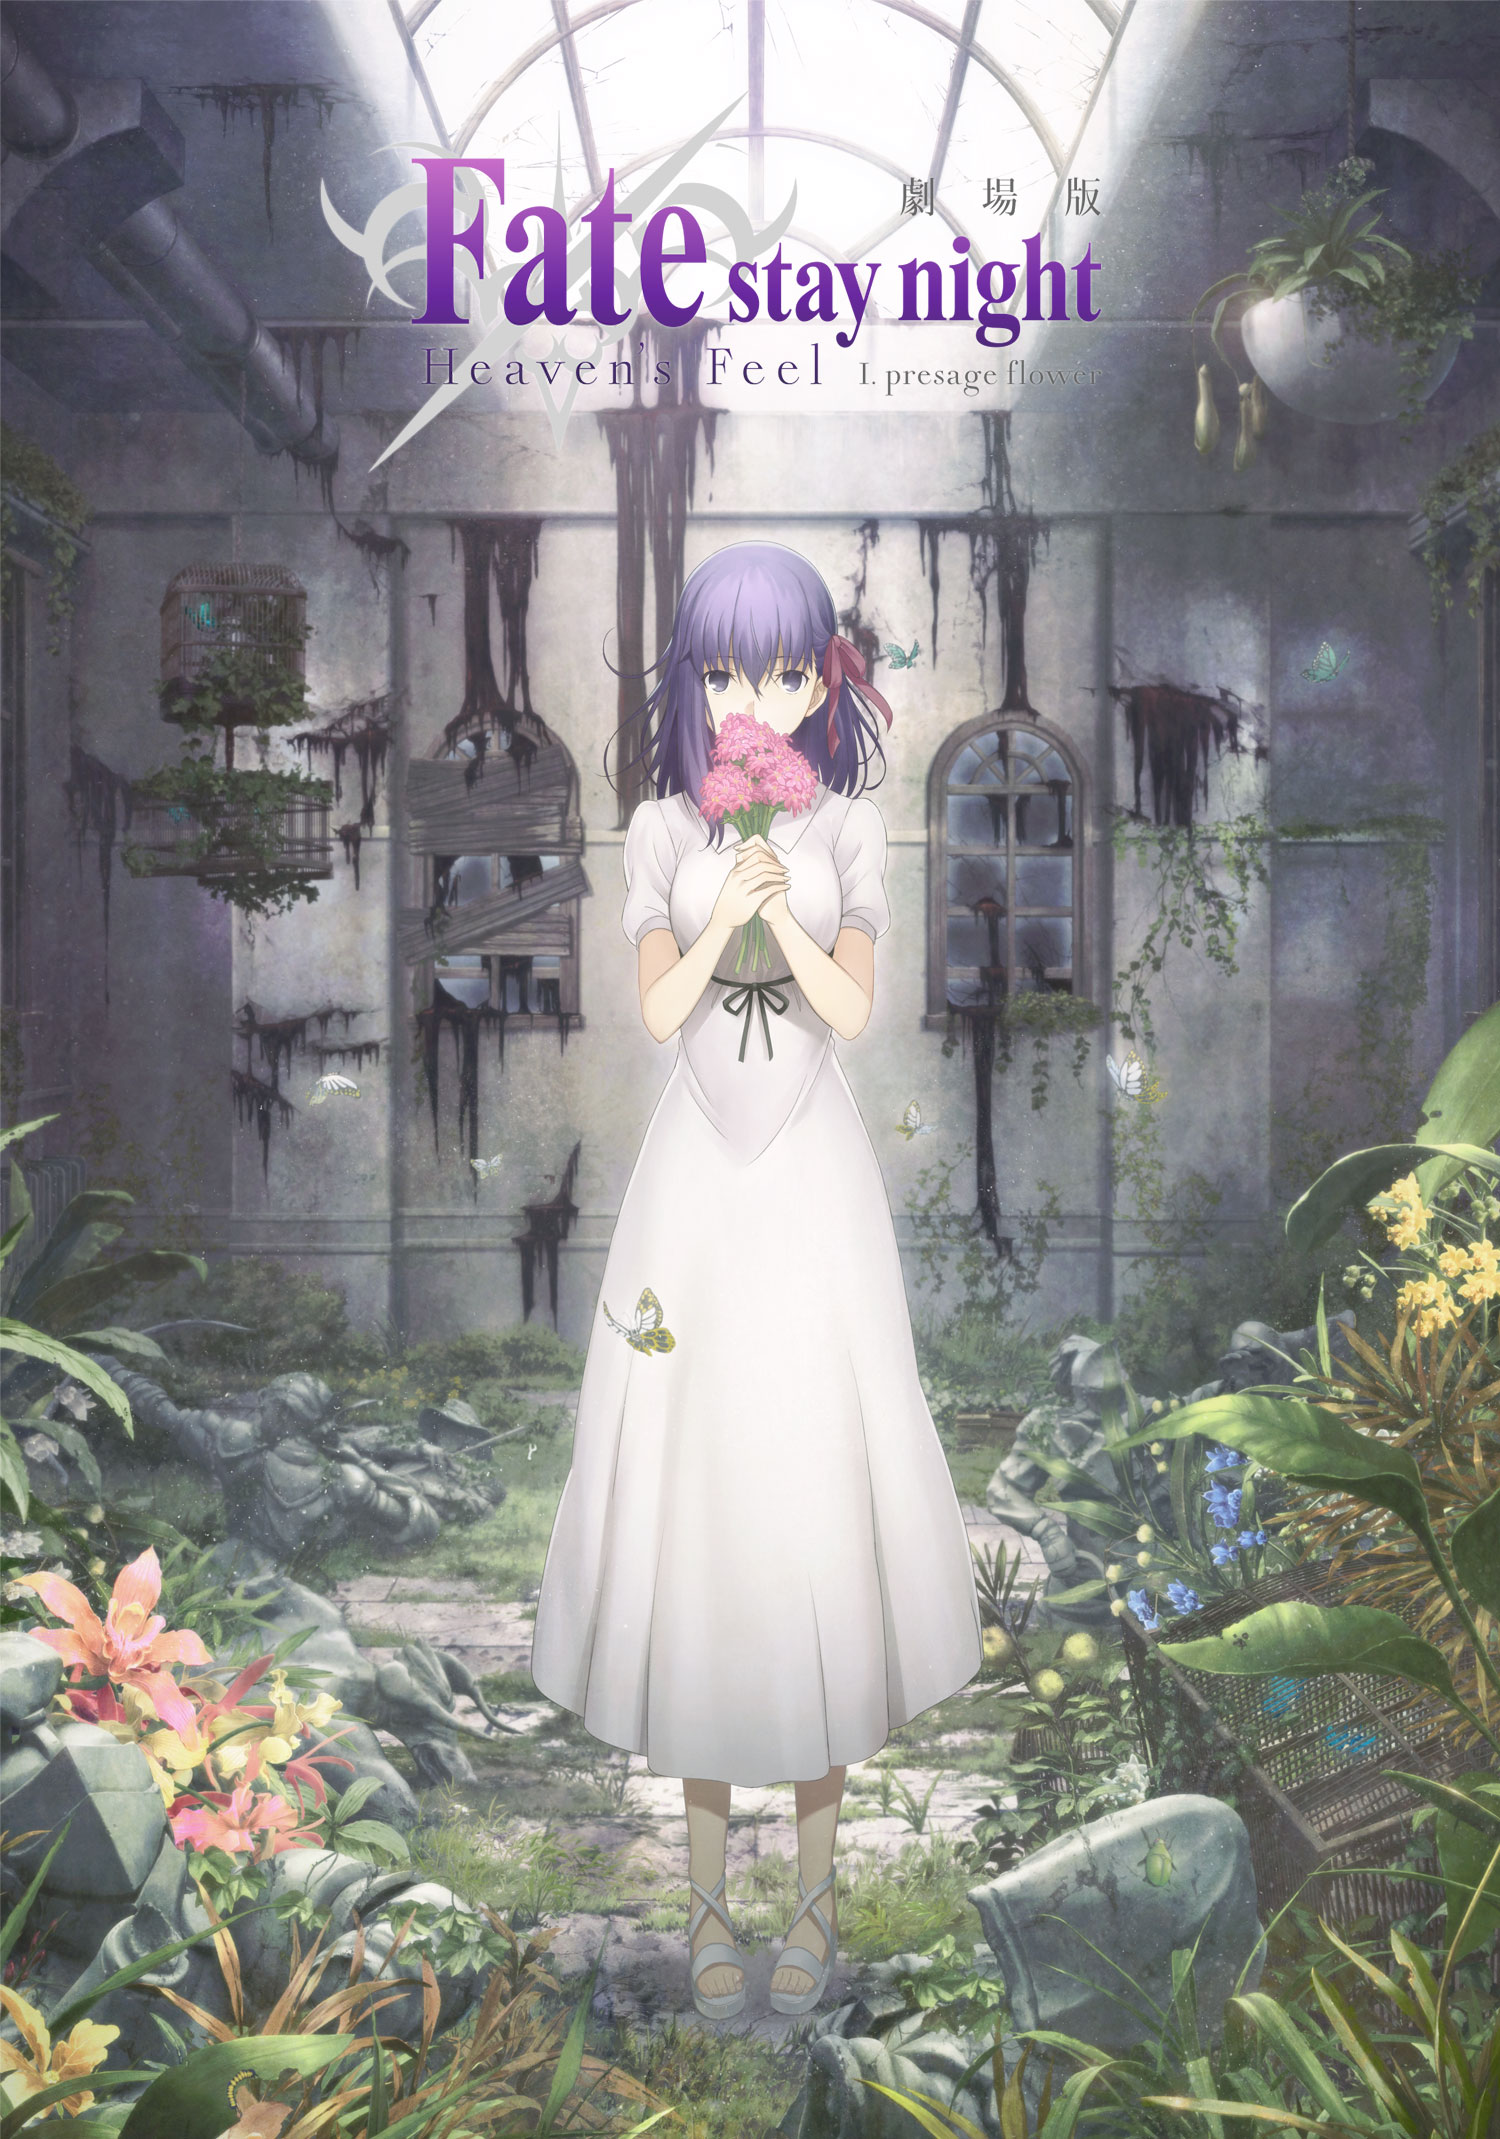 Fate/stay night [Heaven's Feel] presage f..